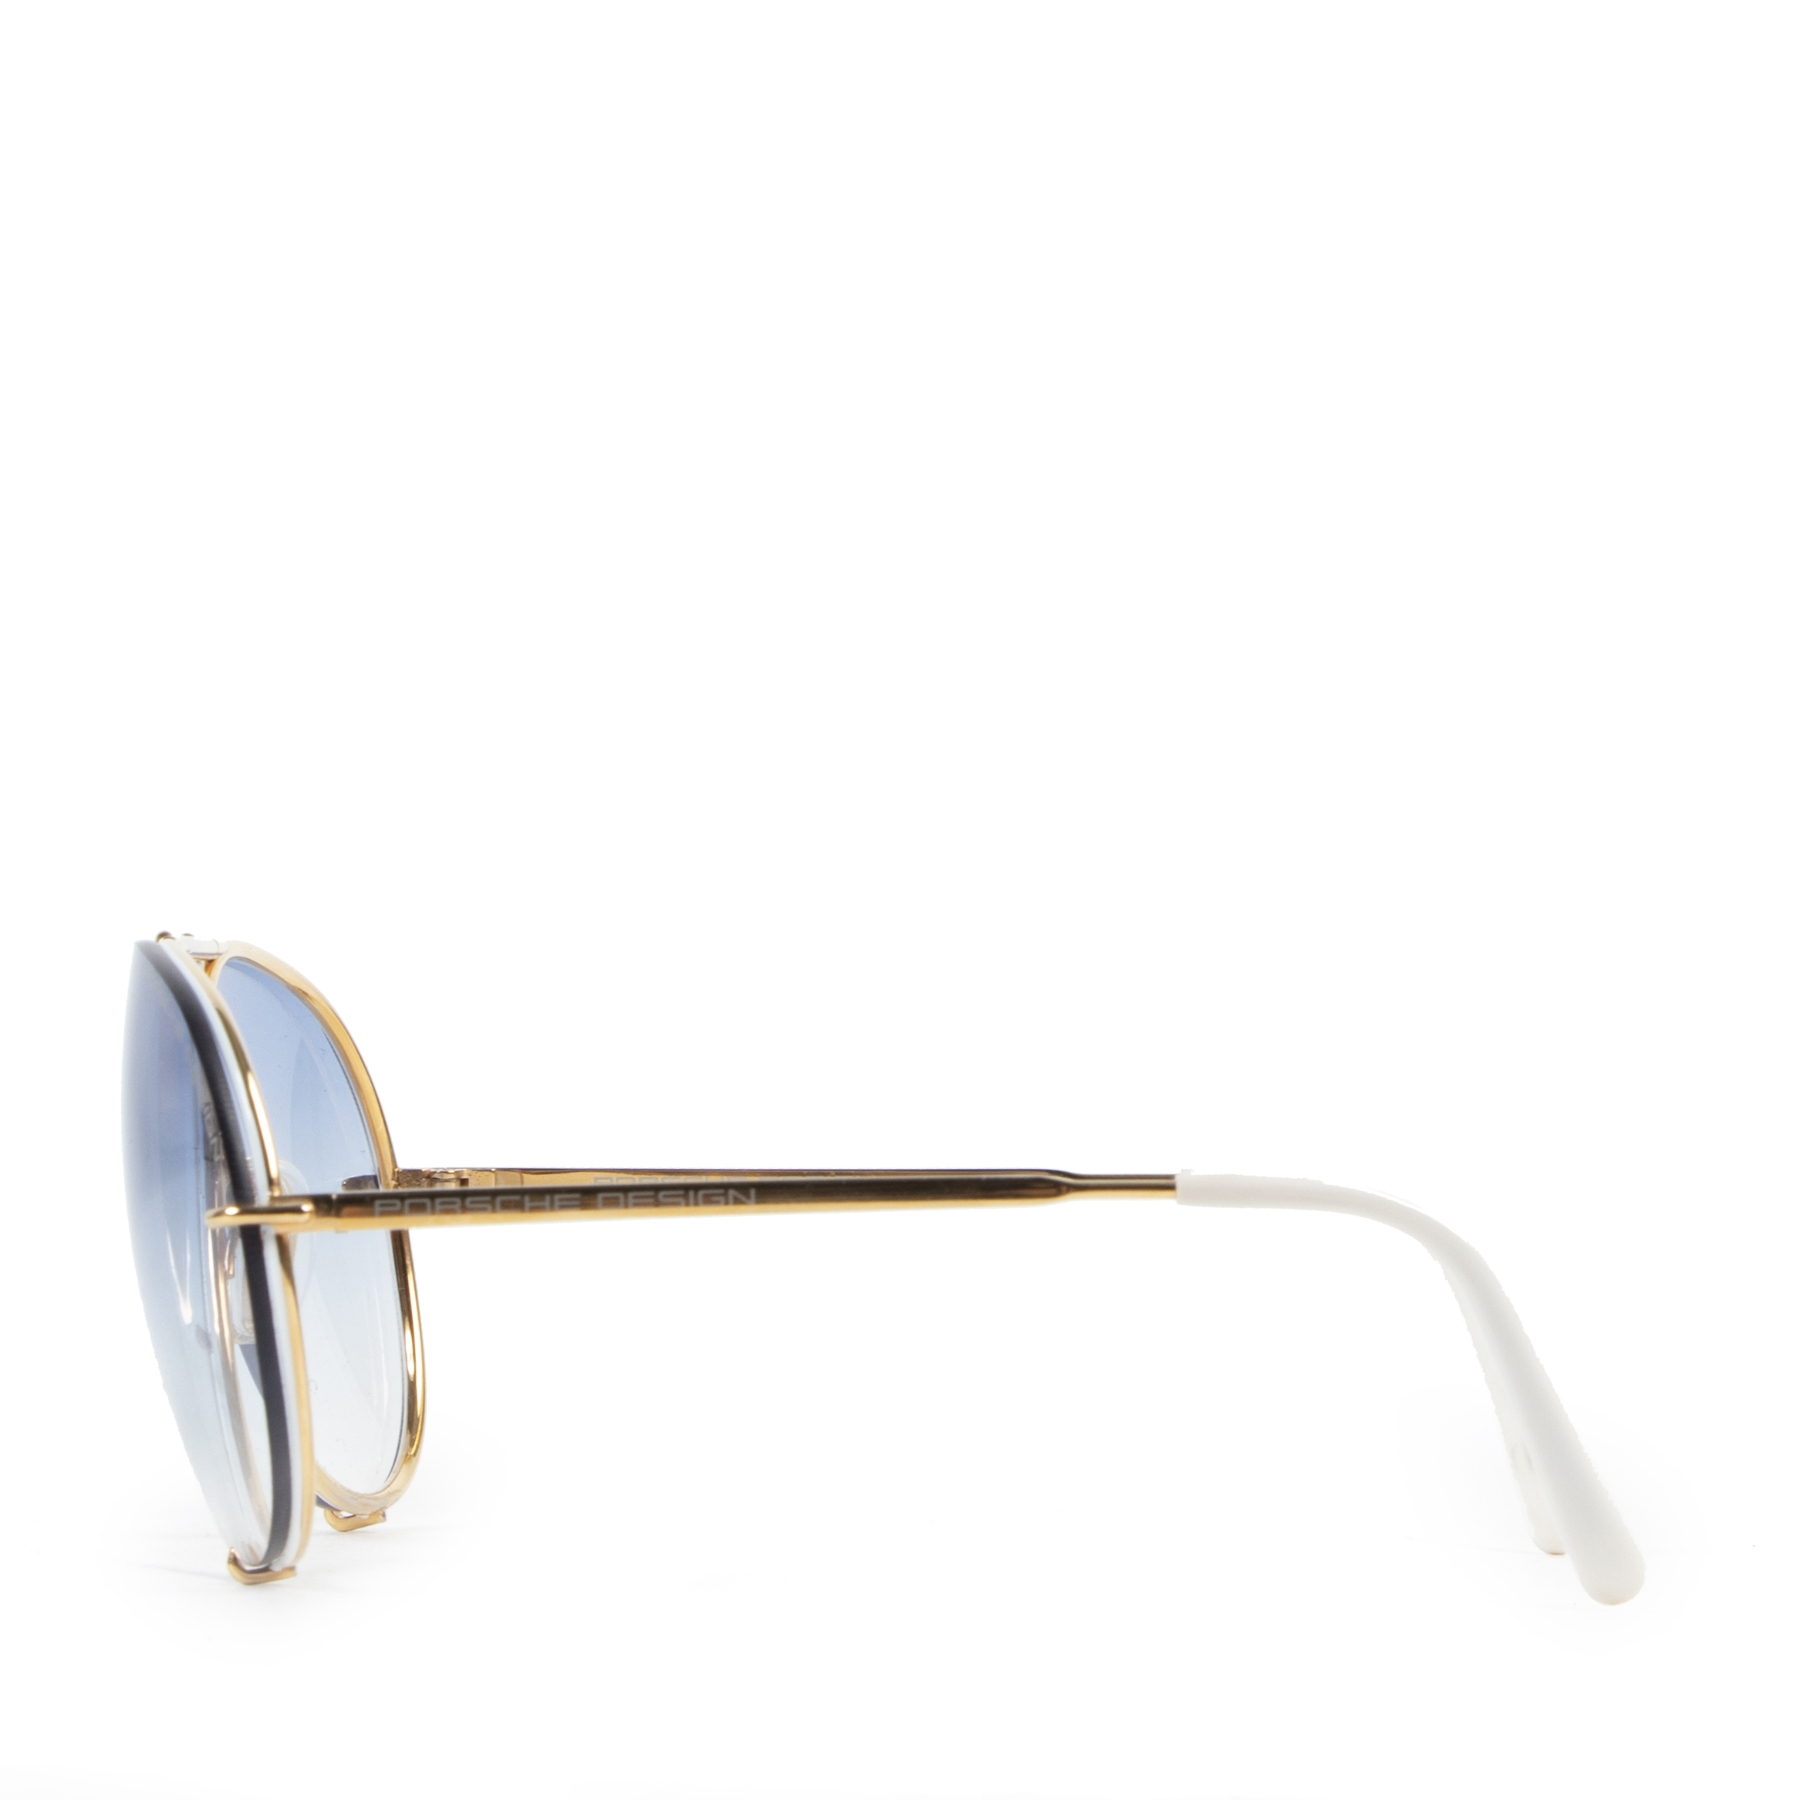 Authentieke tweedehands vintage Porsche Design Transparant Sunglasses koop online webshop LabelLOV